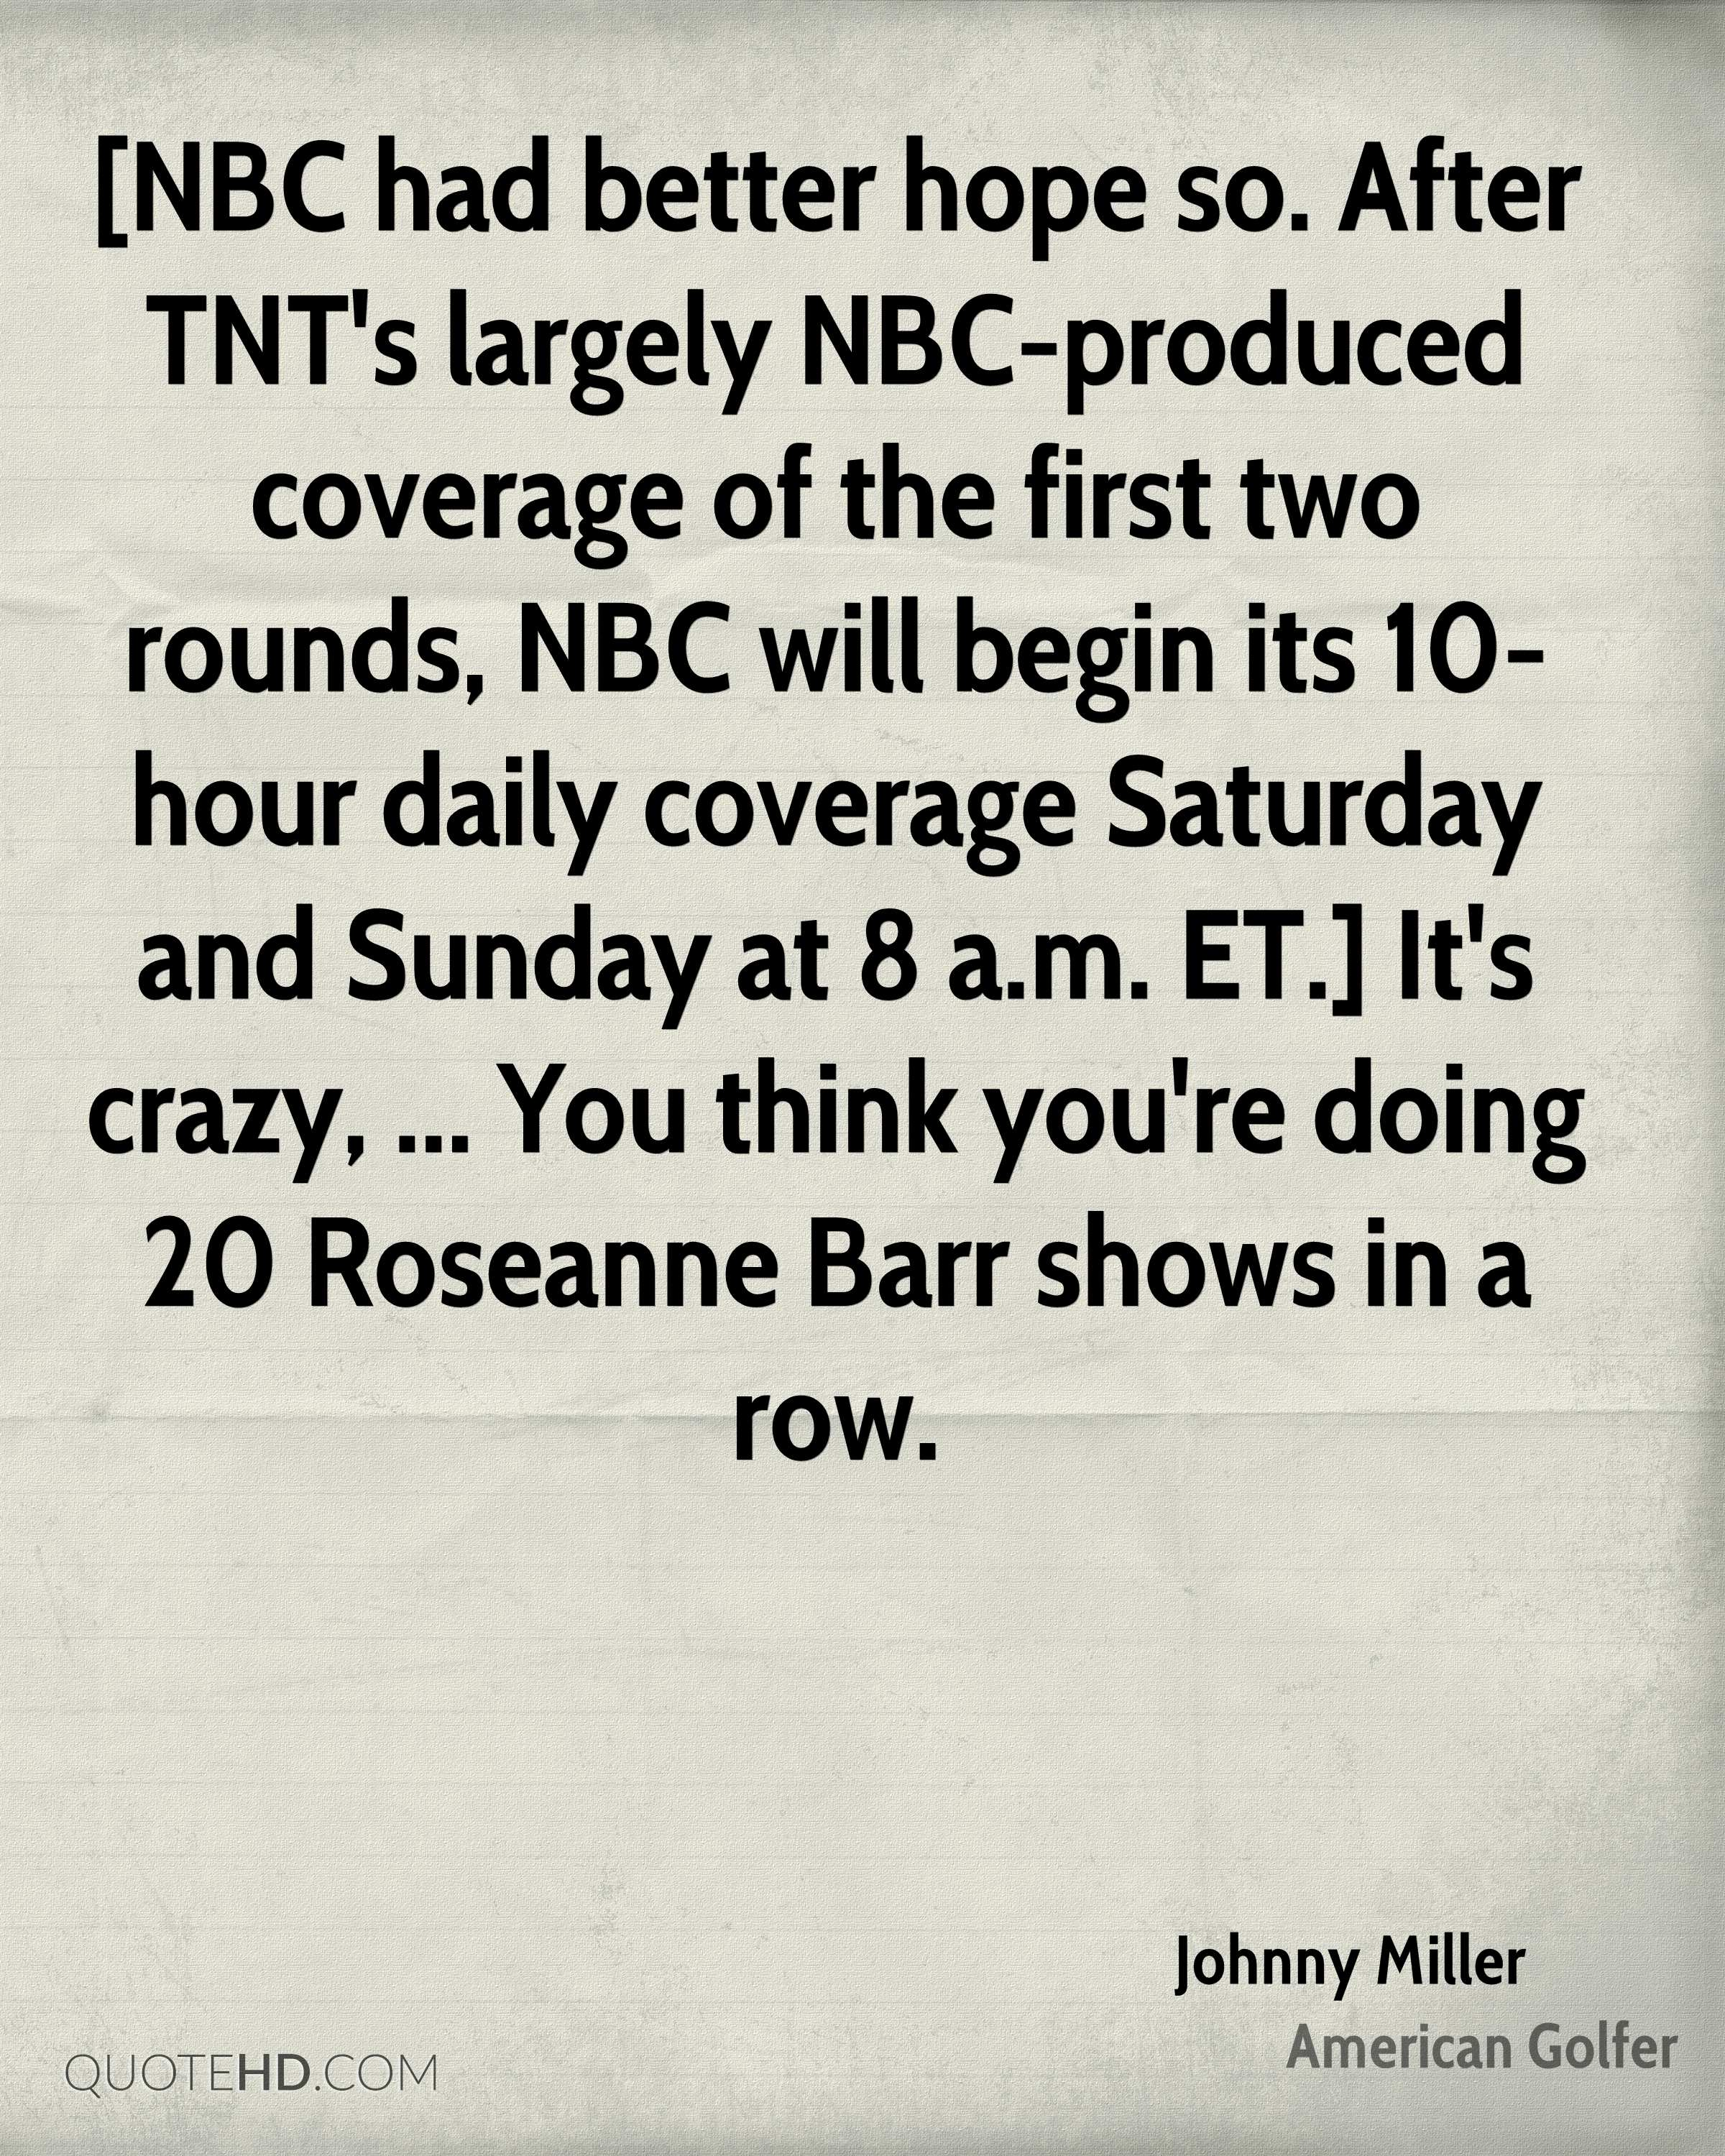 [NBC had better hope so. After TNT's largely NBC-produced coverage of the first two rounds, NBC will begin its 10-hour daily coverage Saturday and Sunday at 8 a.m. ET.] It's crazy, ... You think you're doing 20 Roseanne Barr shows in a row.